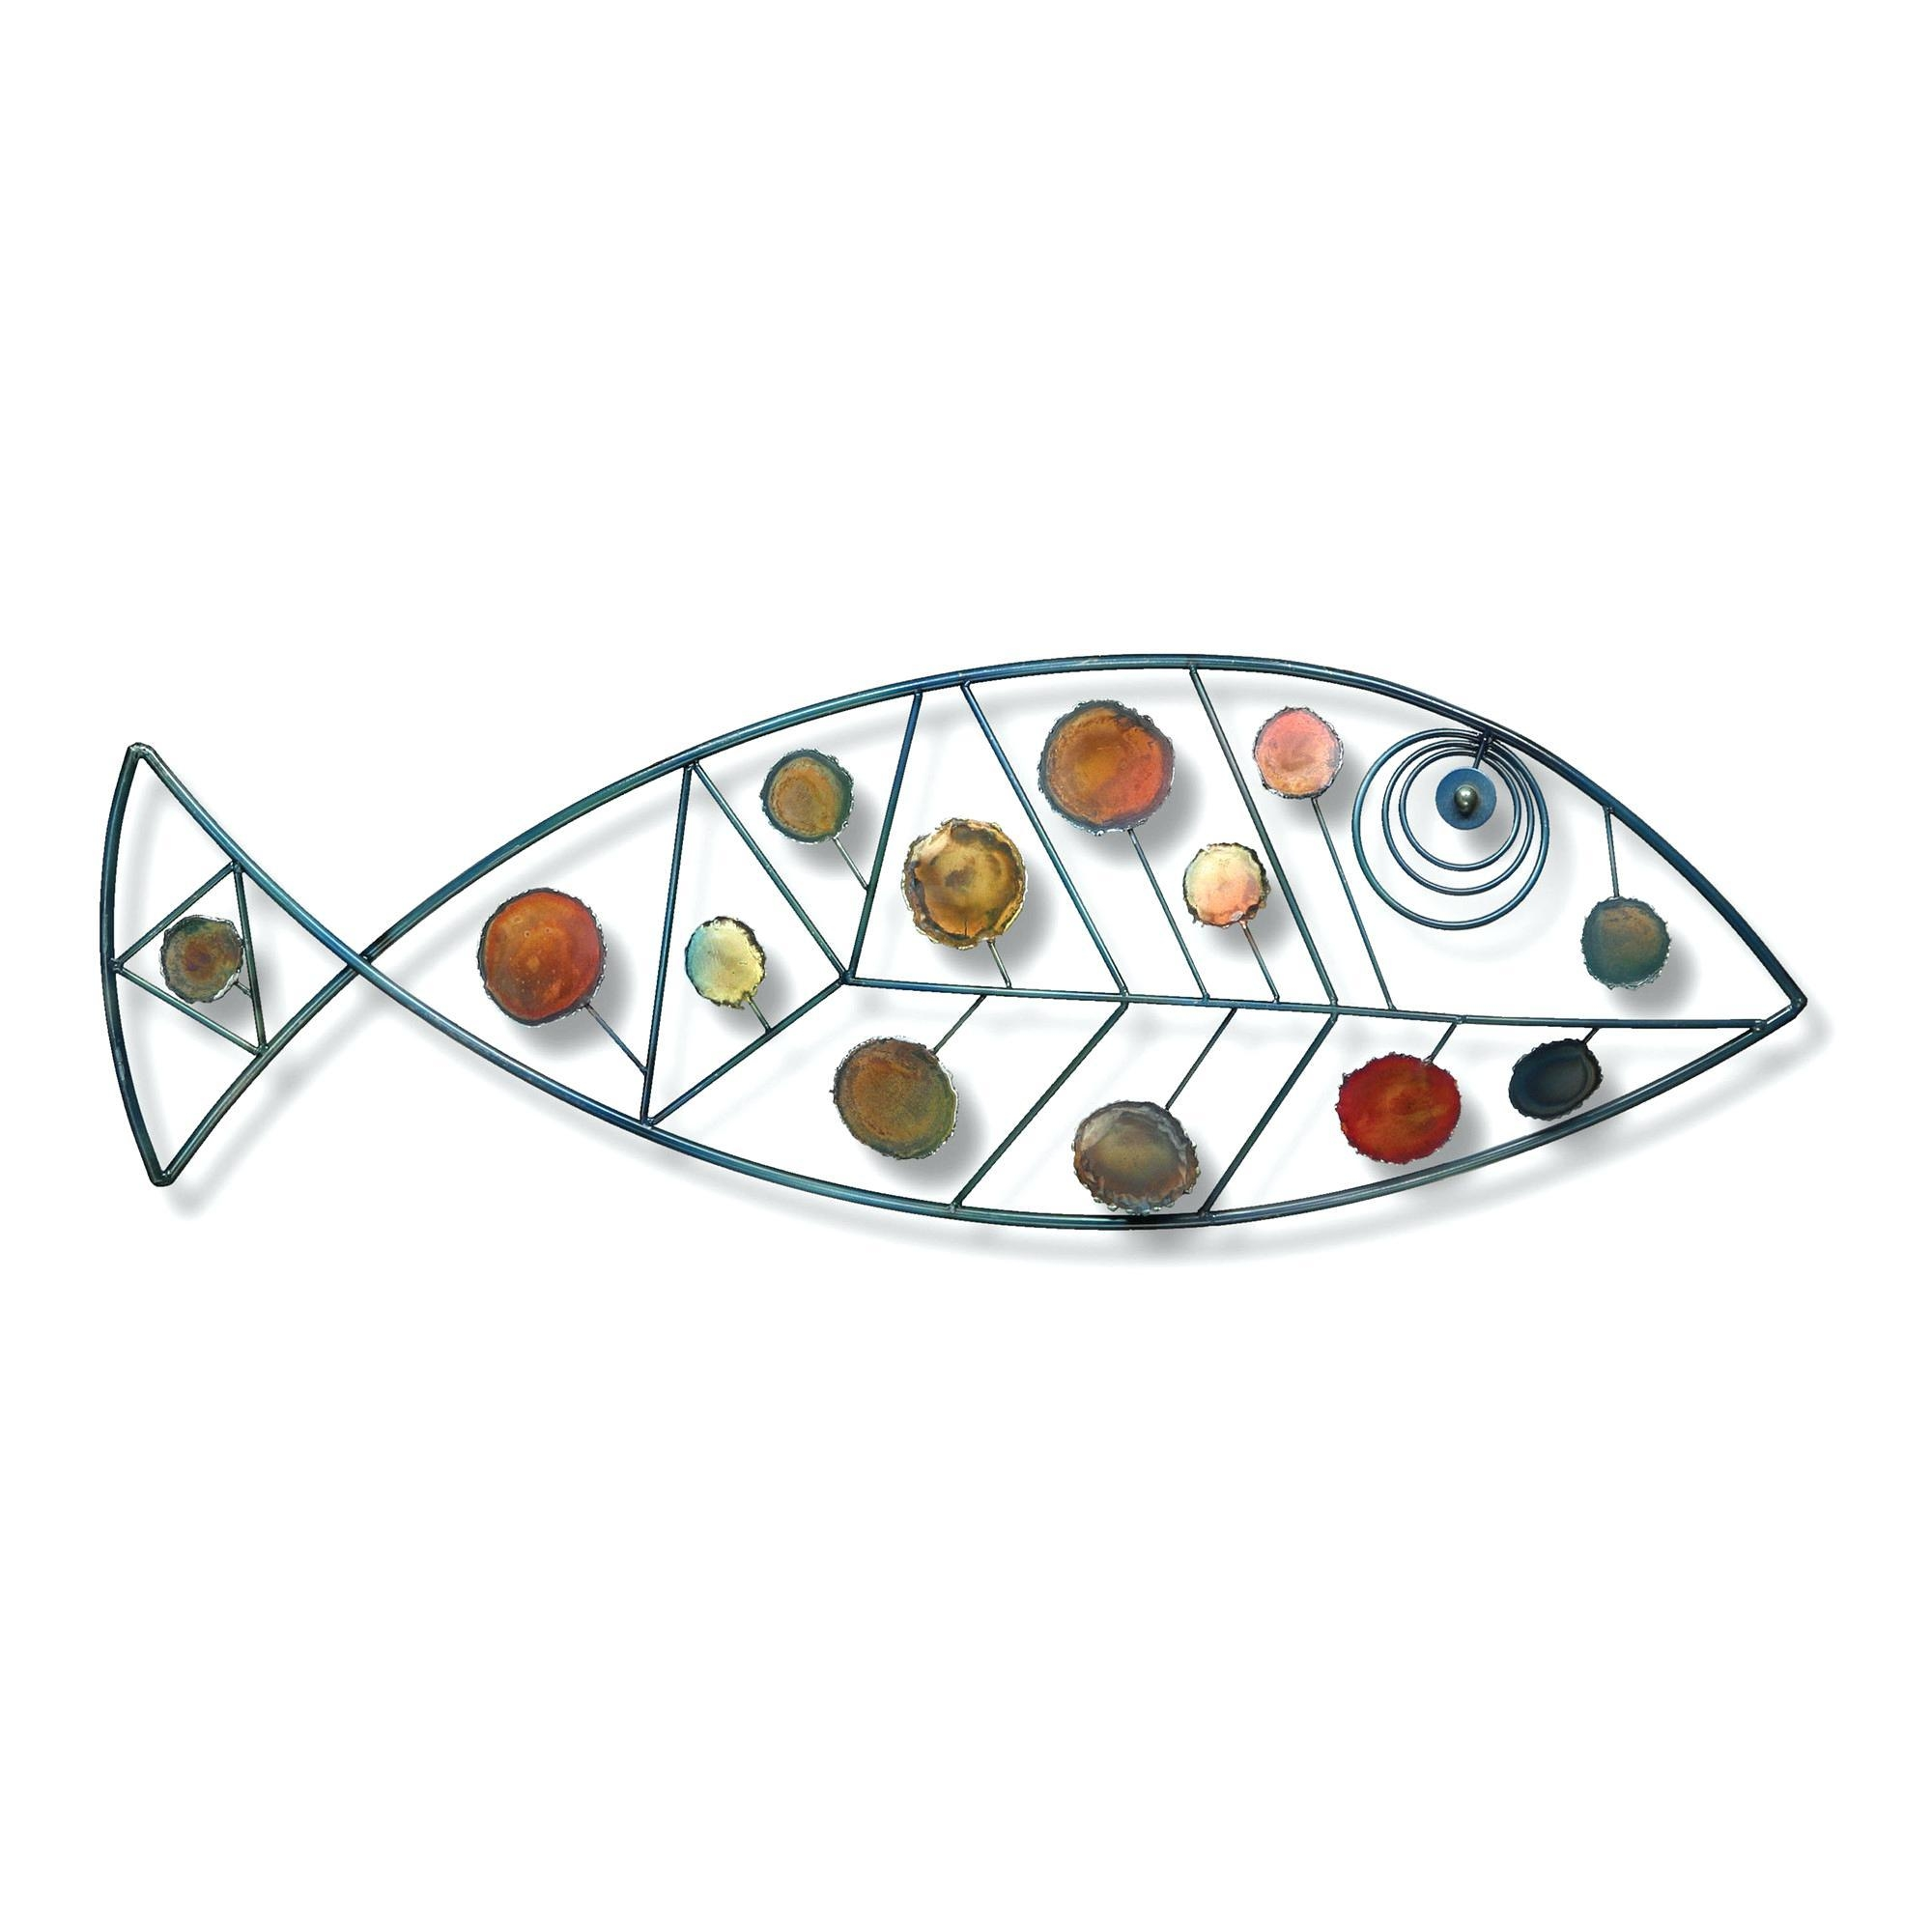 Wall Ideas : Large Wooden Fish Wall Art Ceramic Fish Wall Art Nz Regarding Metal School Of Fish Wall Art (View 8 of 20)